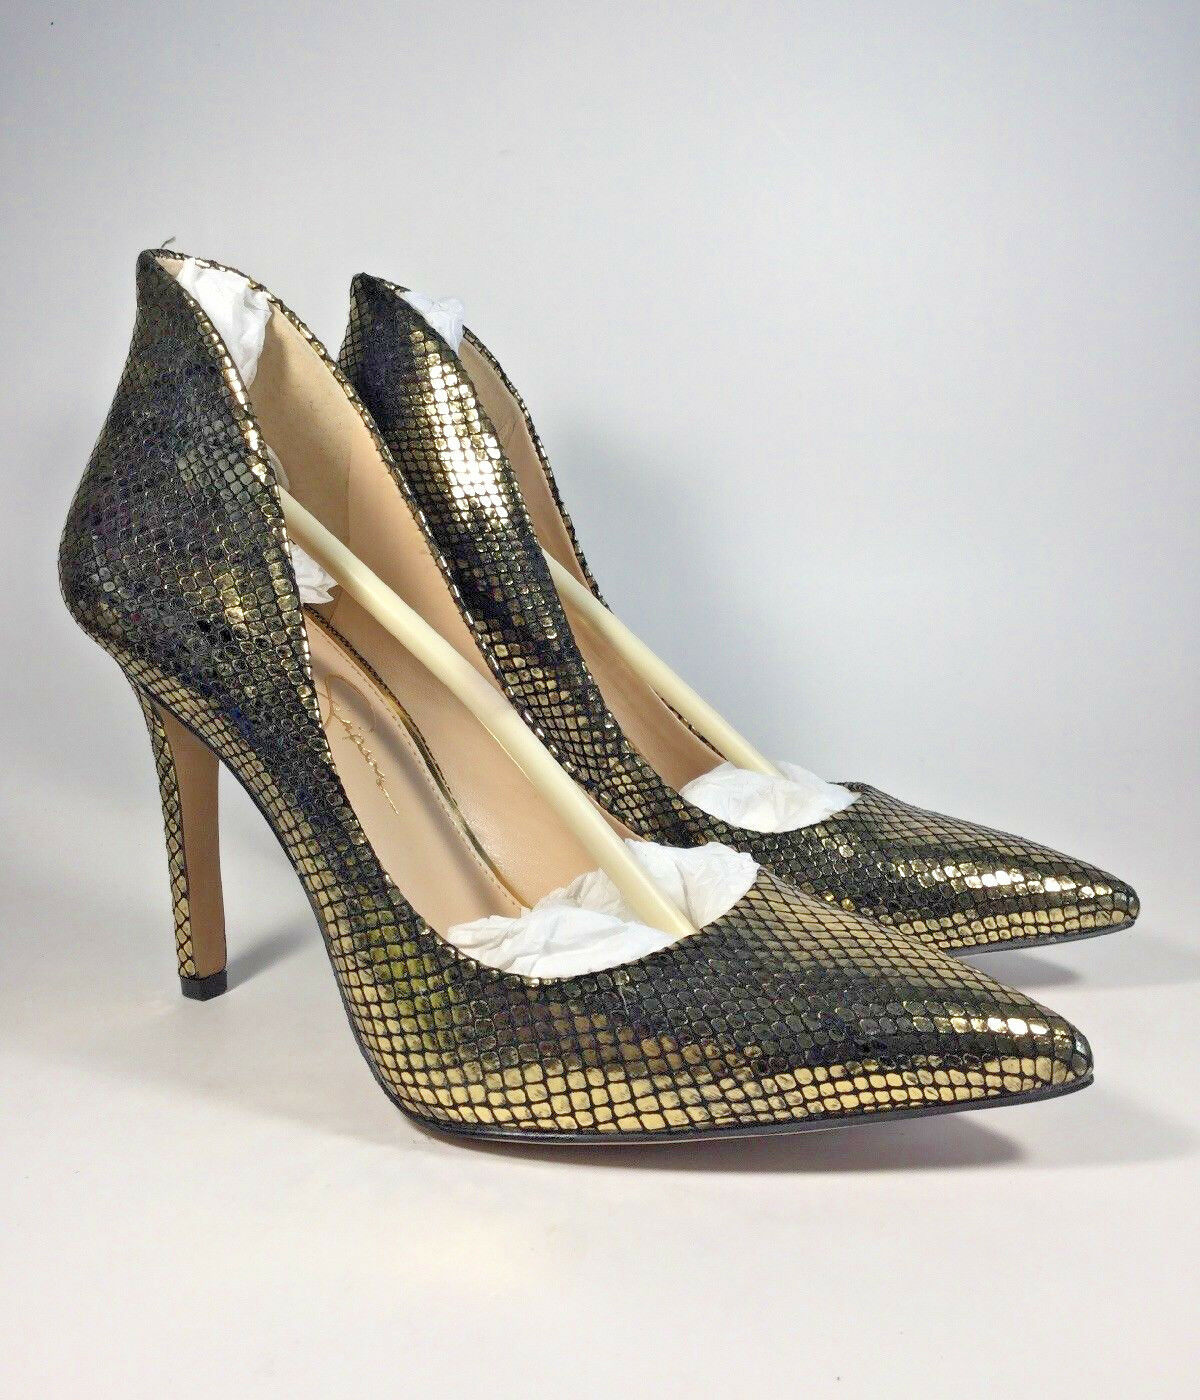 M3404 New Women's Jessica Simpson Cambredge Exotic gold Stamped Snake US 9.5 M